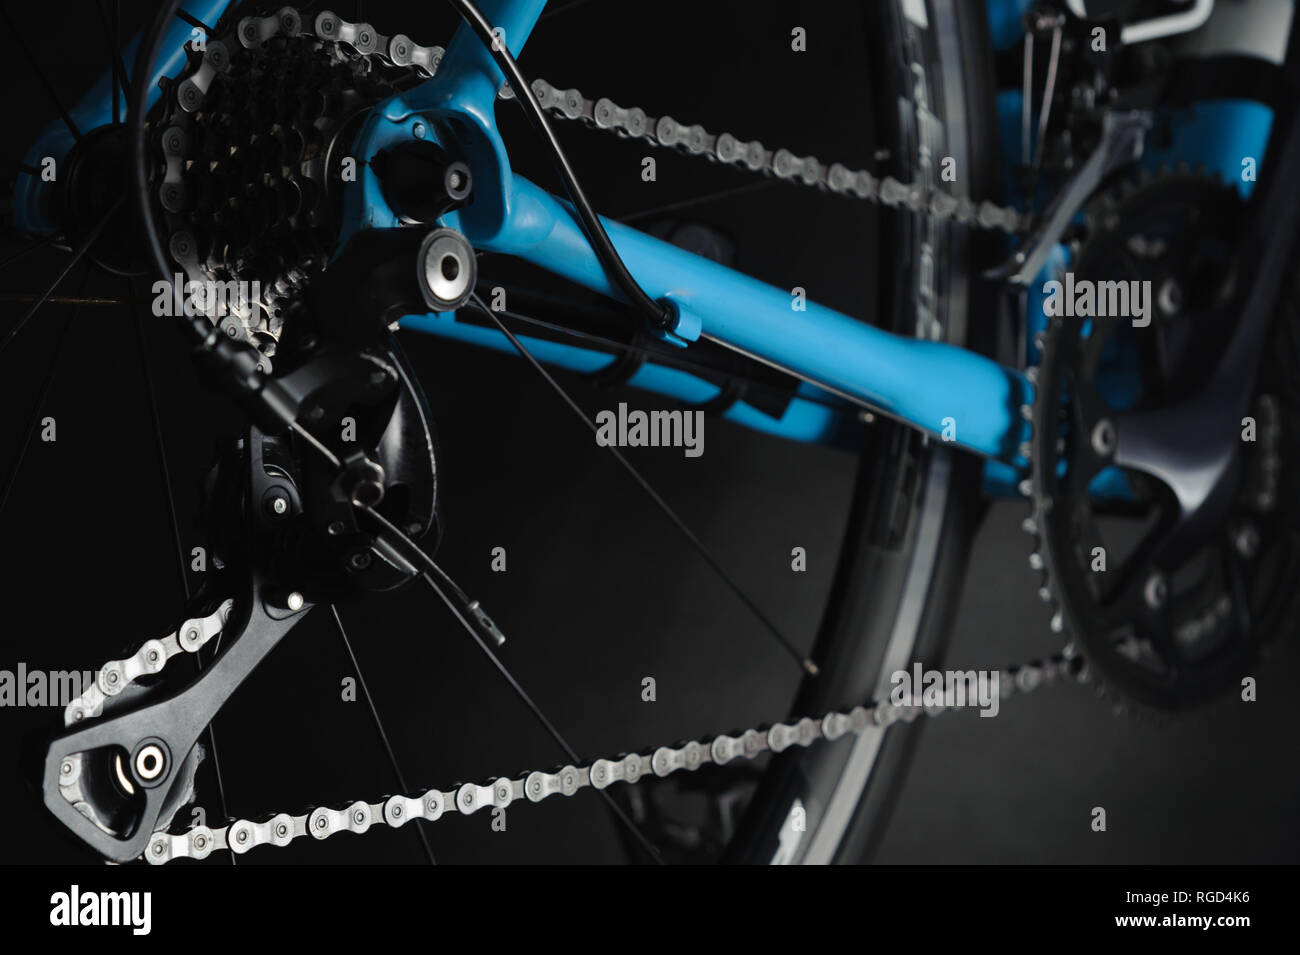 Detail of bicycle components. Close up cassette, chain and rear derailleur. Studio photo - Stock Image